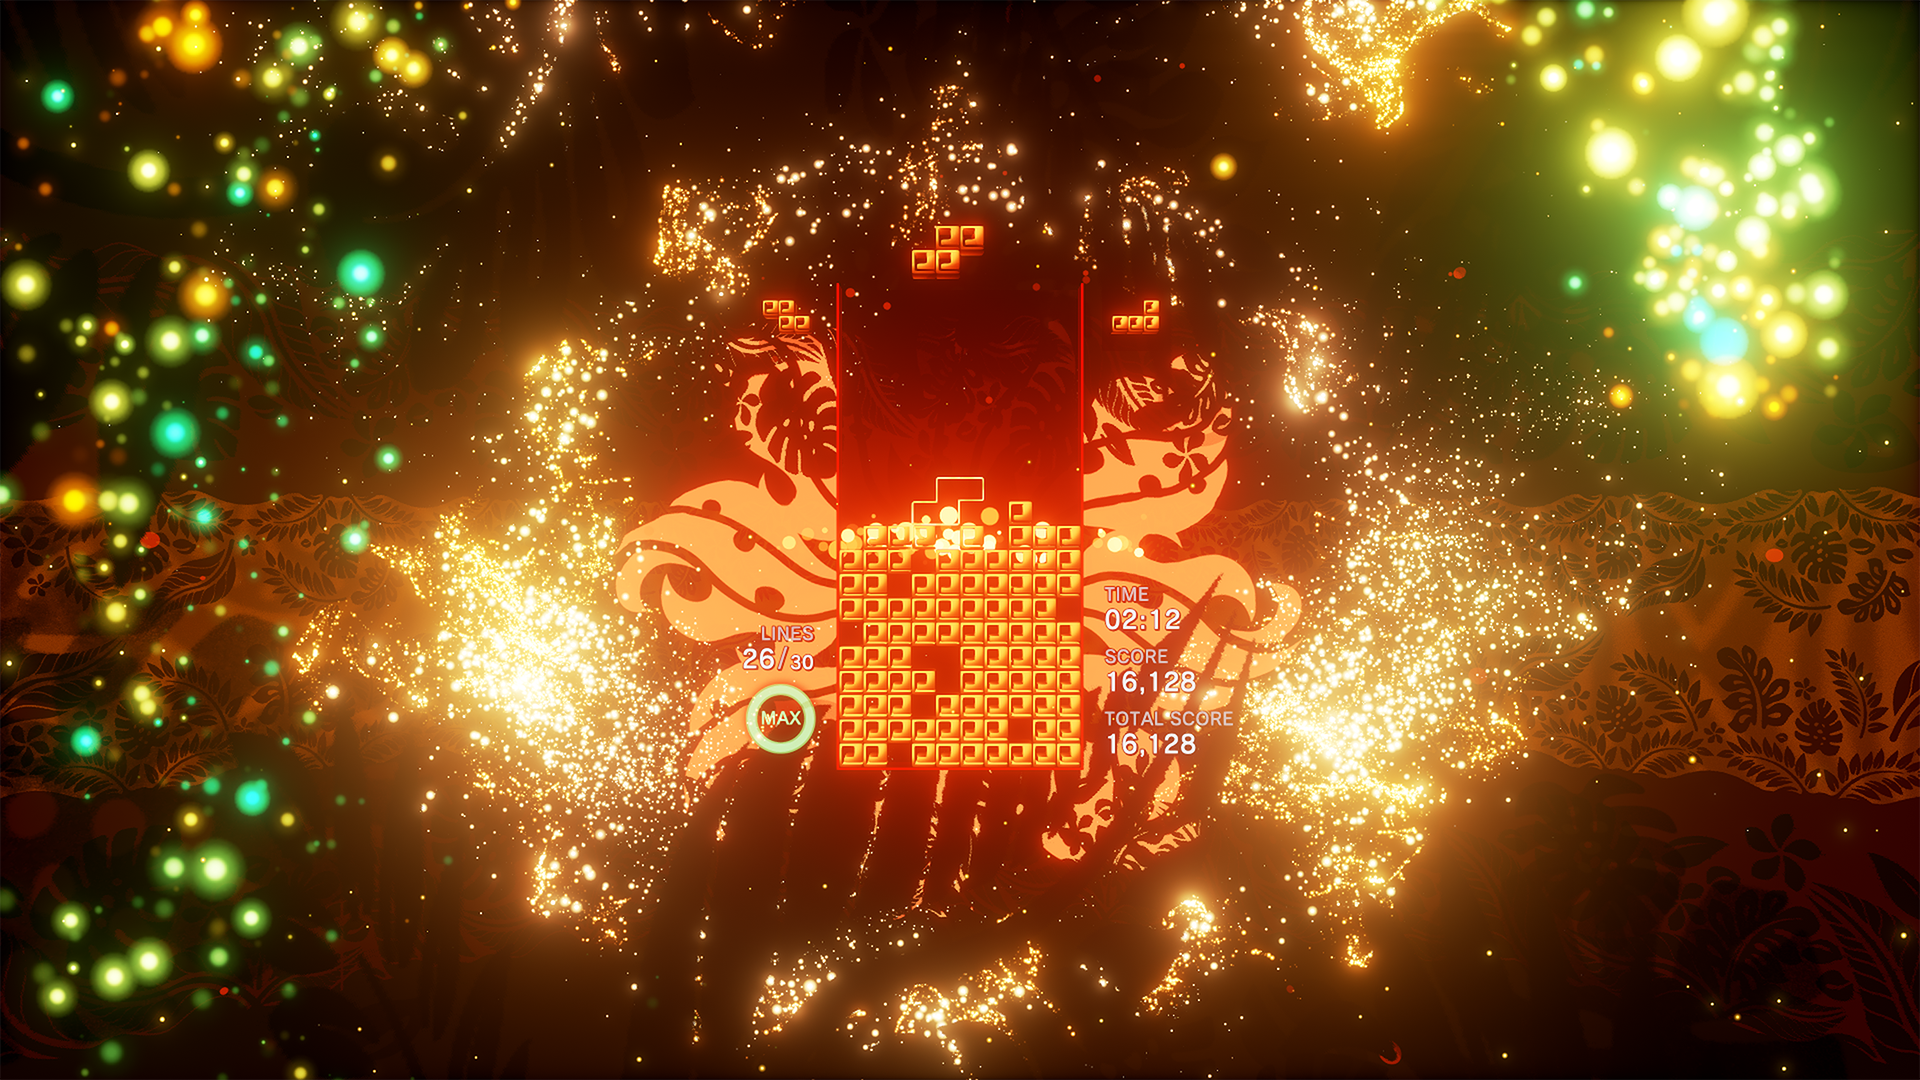 The Tetris Effect soundtrack is finally getting a proper release